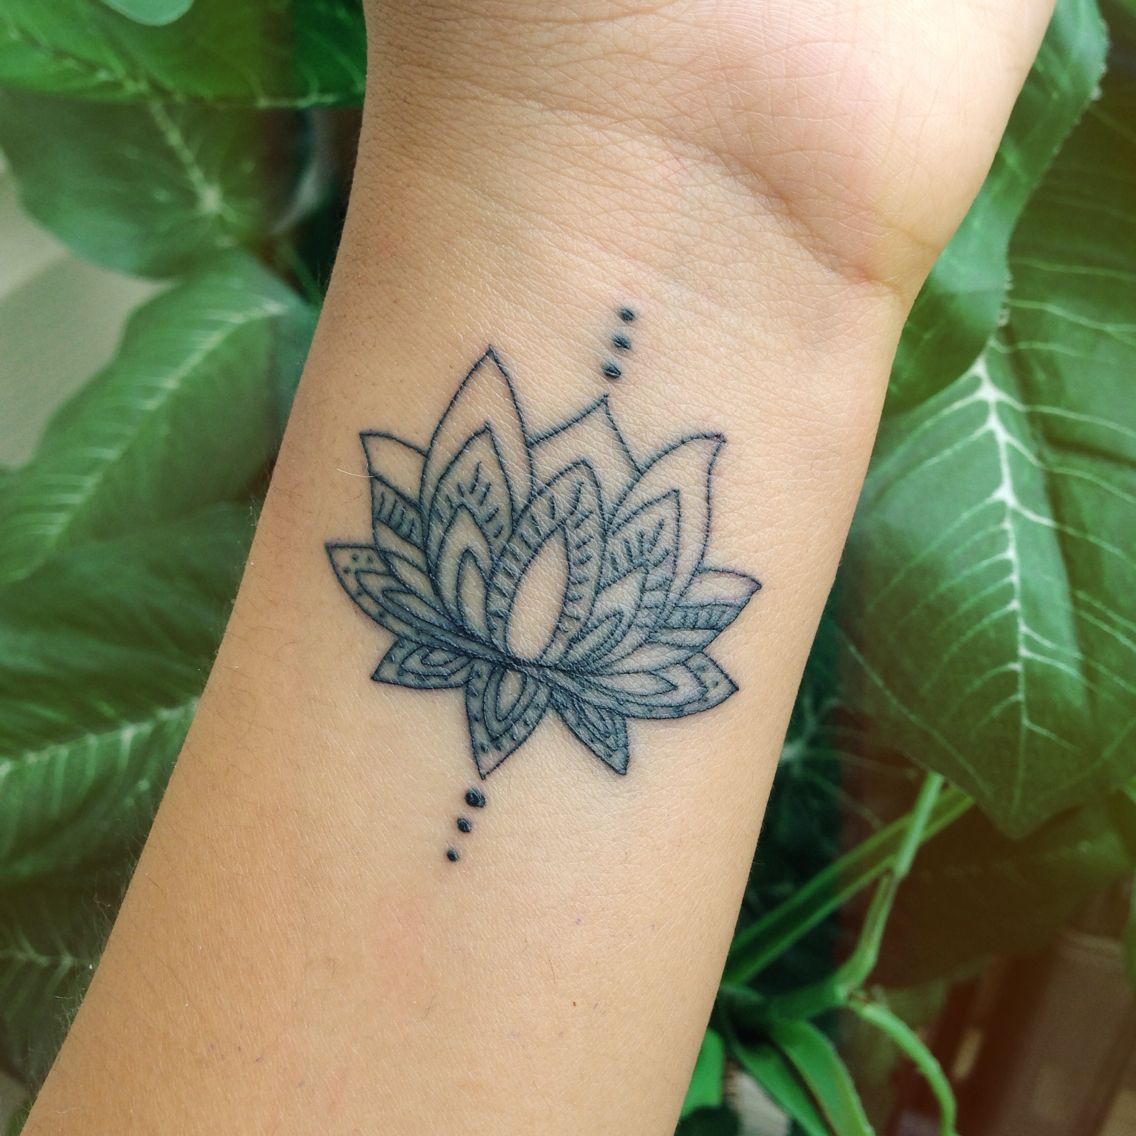 40 Awesome Wrist Tattoo Ideas For Inspiration Lotus